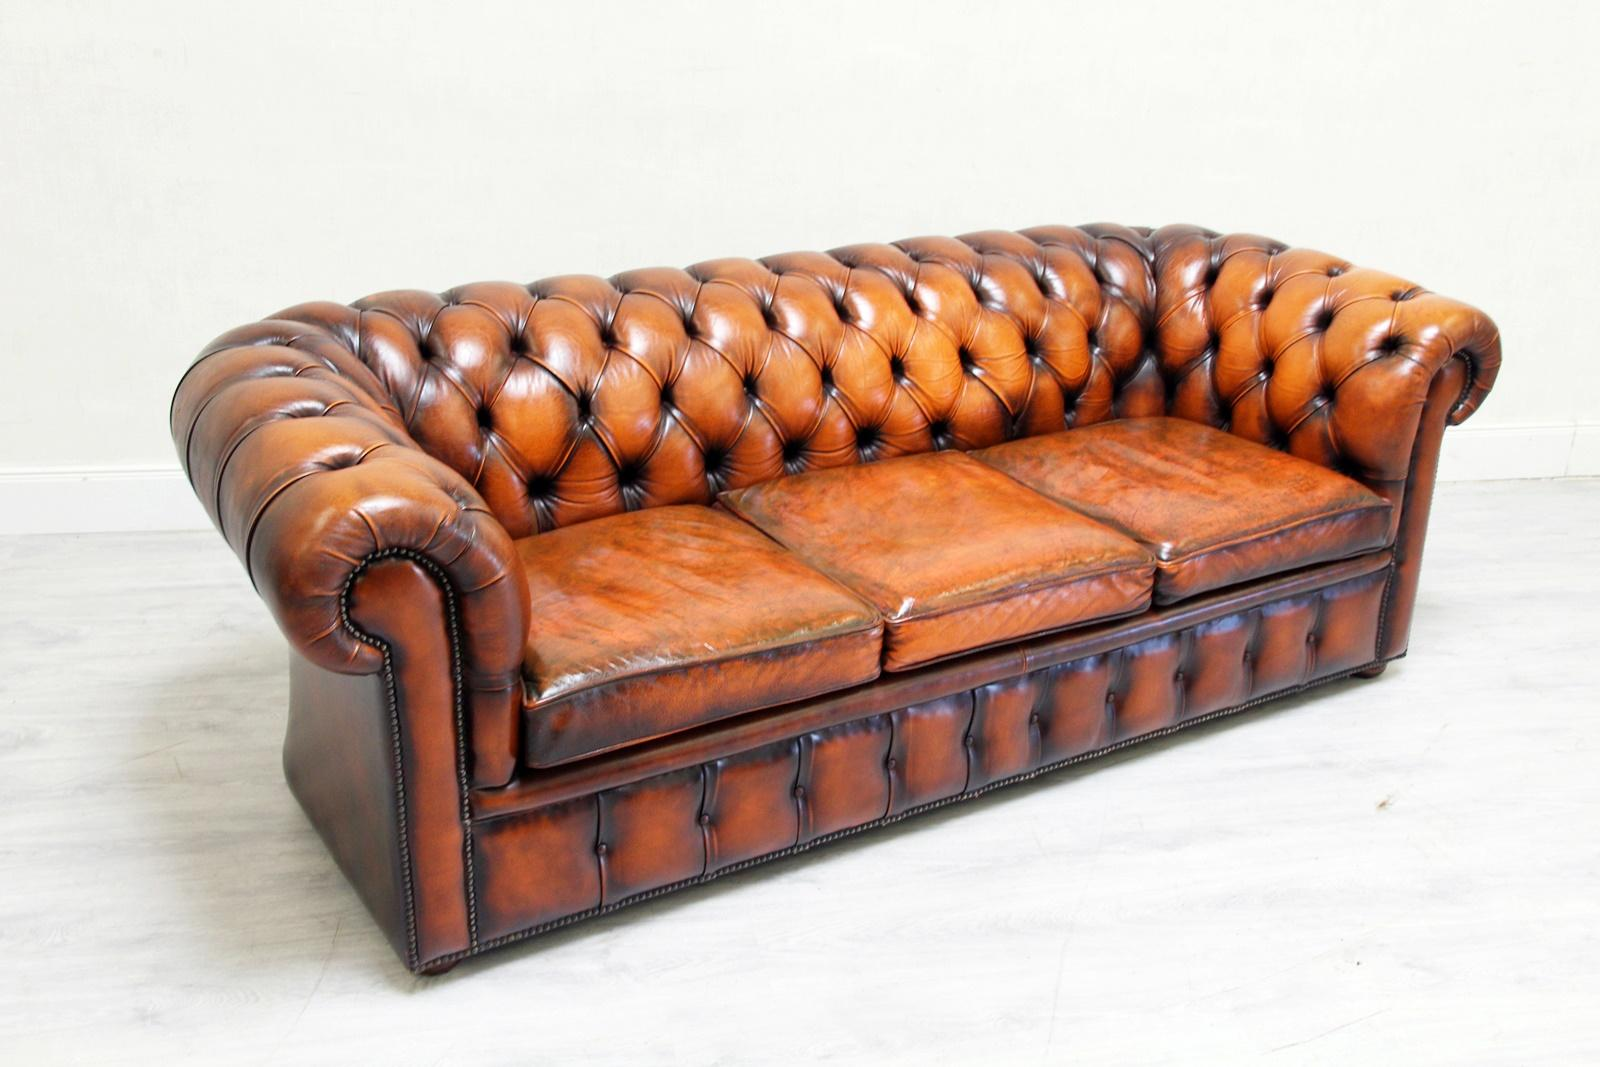 Chesterfield Sofa Leder Antik Vintage Couch English Chippendale For Sale 3 Amazing Pictures